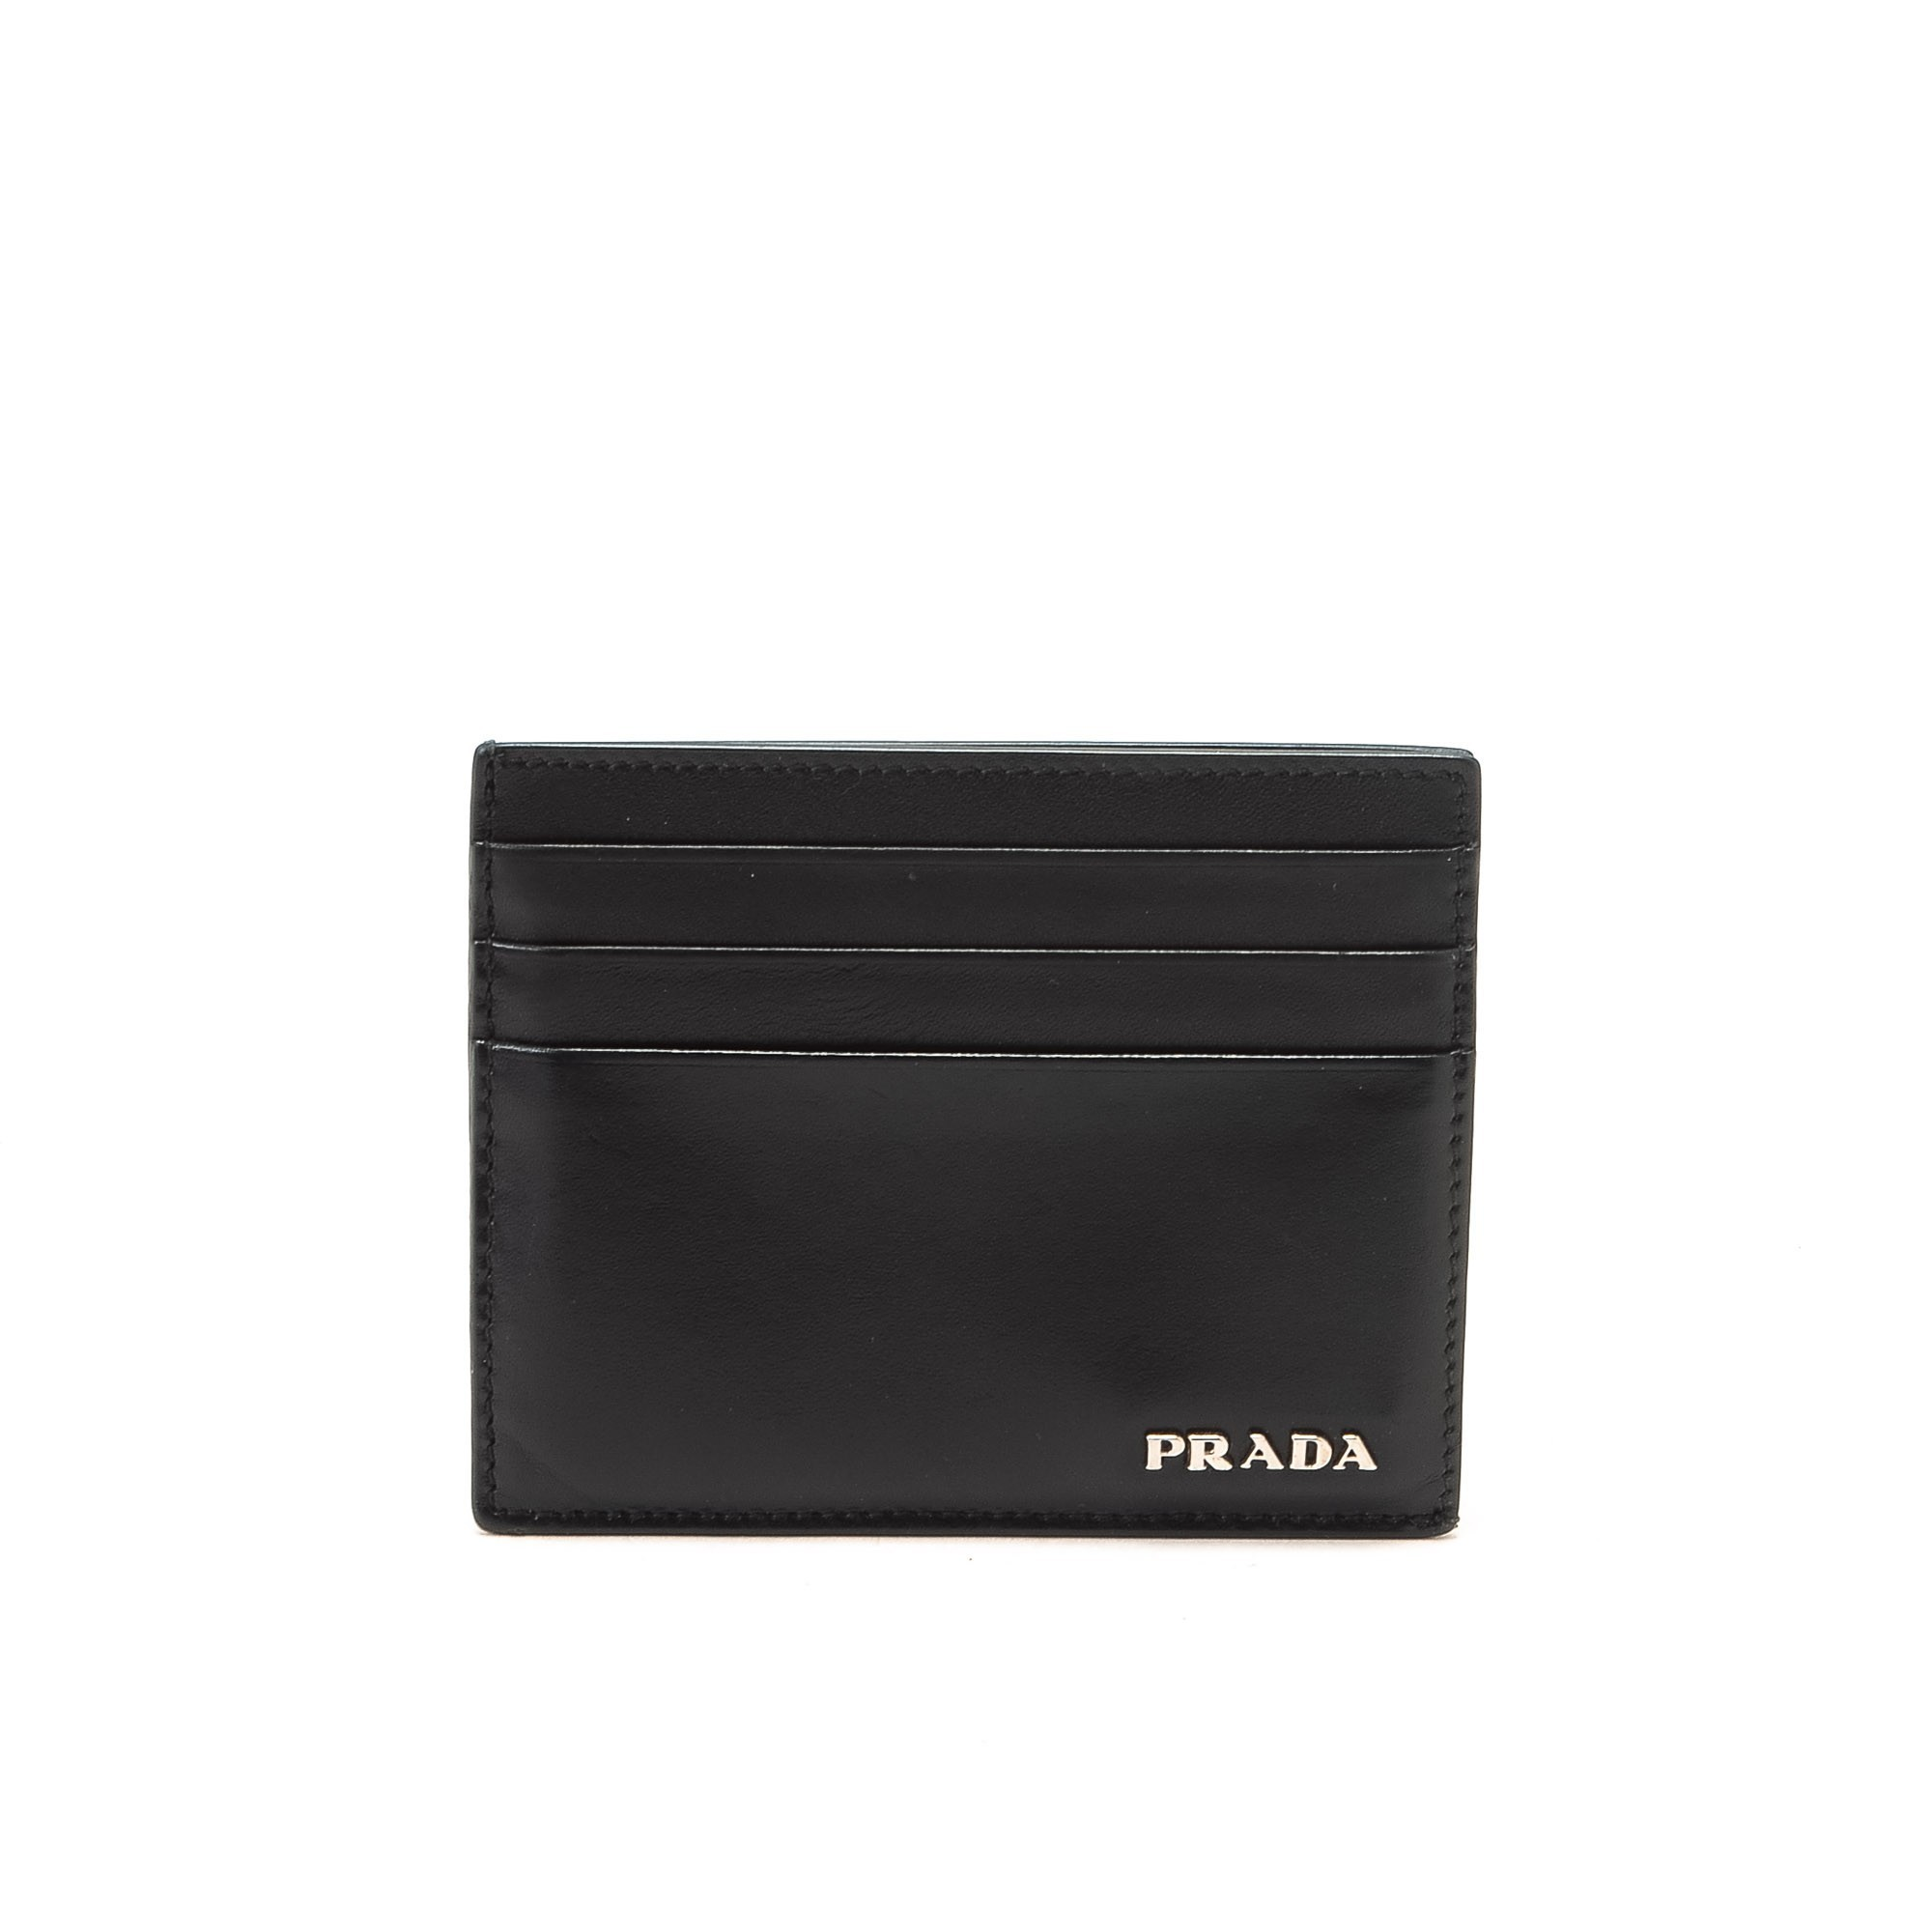 Prada Black Leather Wallet Latest Prada